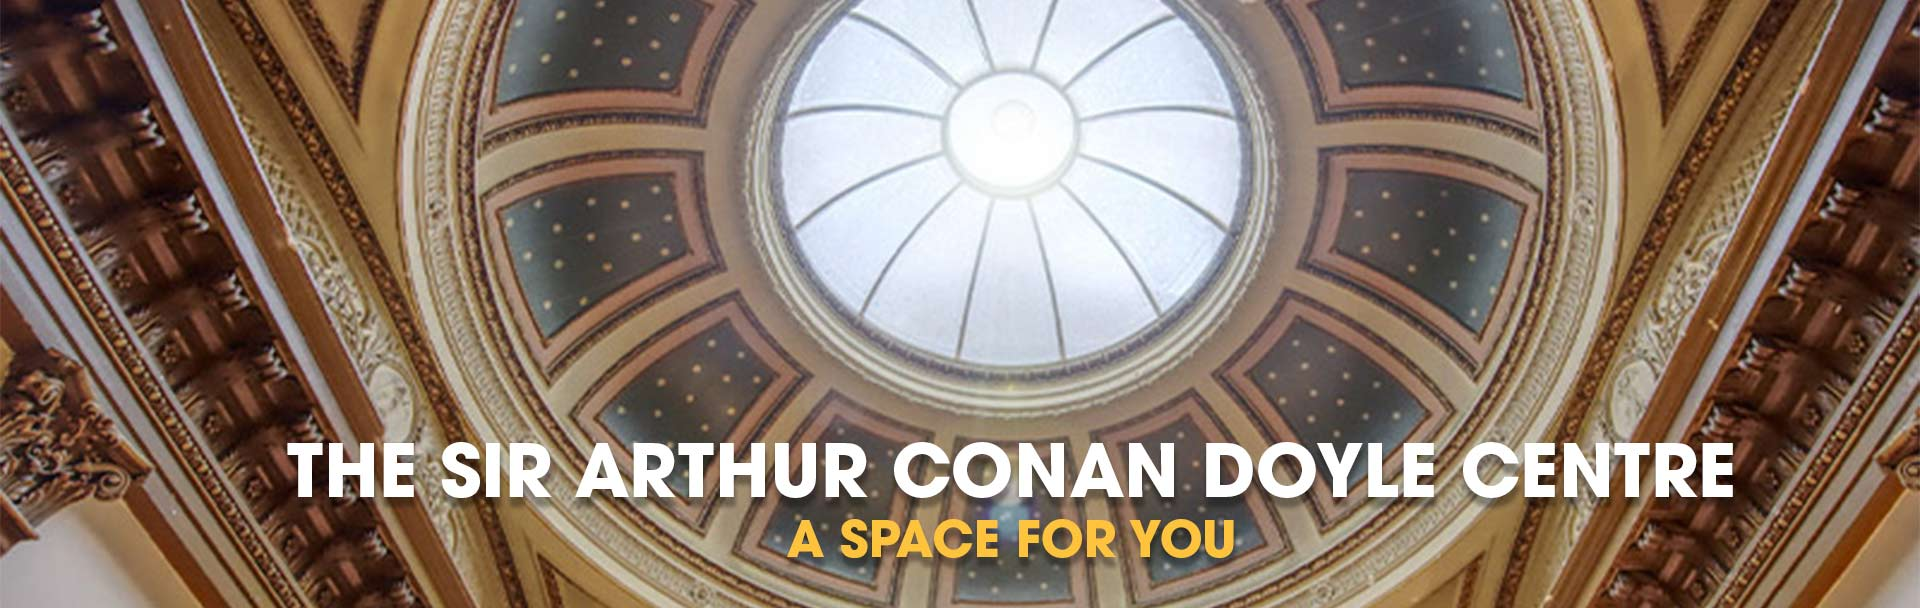 Sign Up to the Arthur Conan Doyle Centre for Spritual experiences